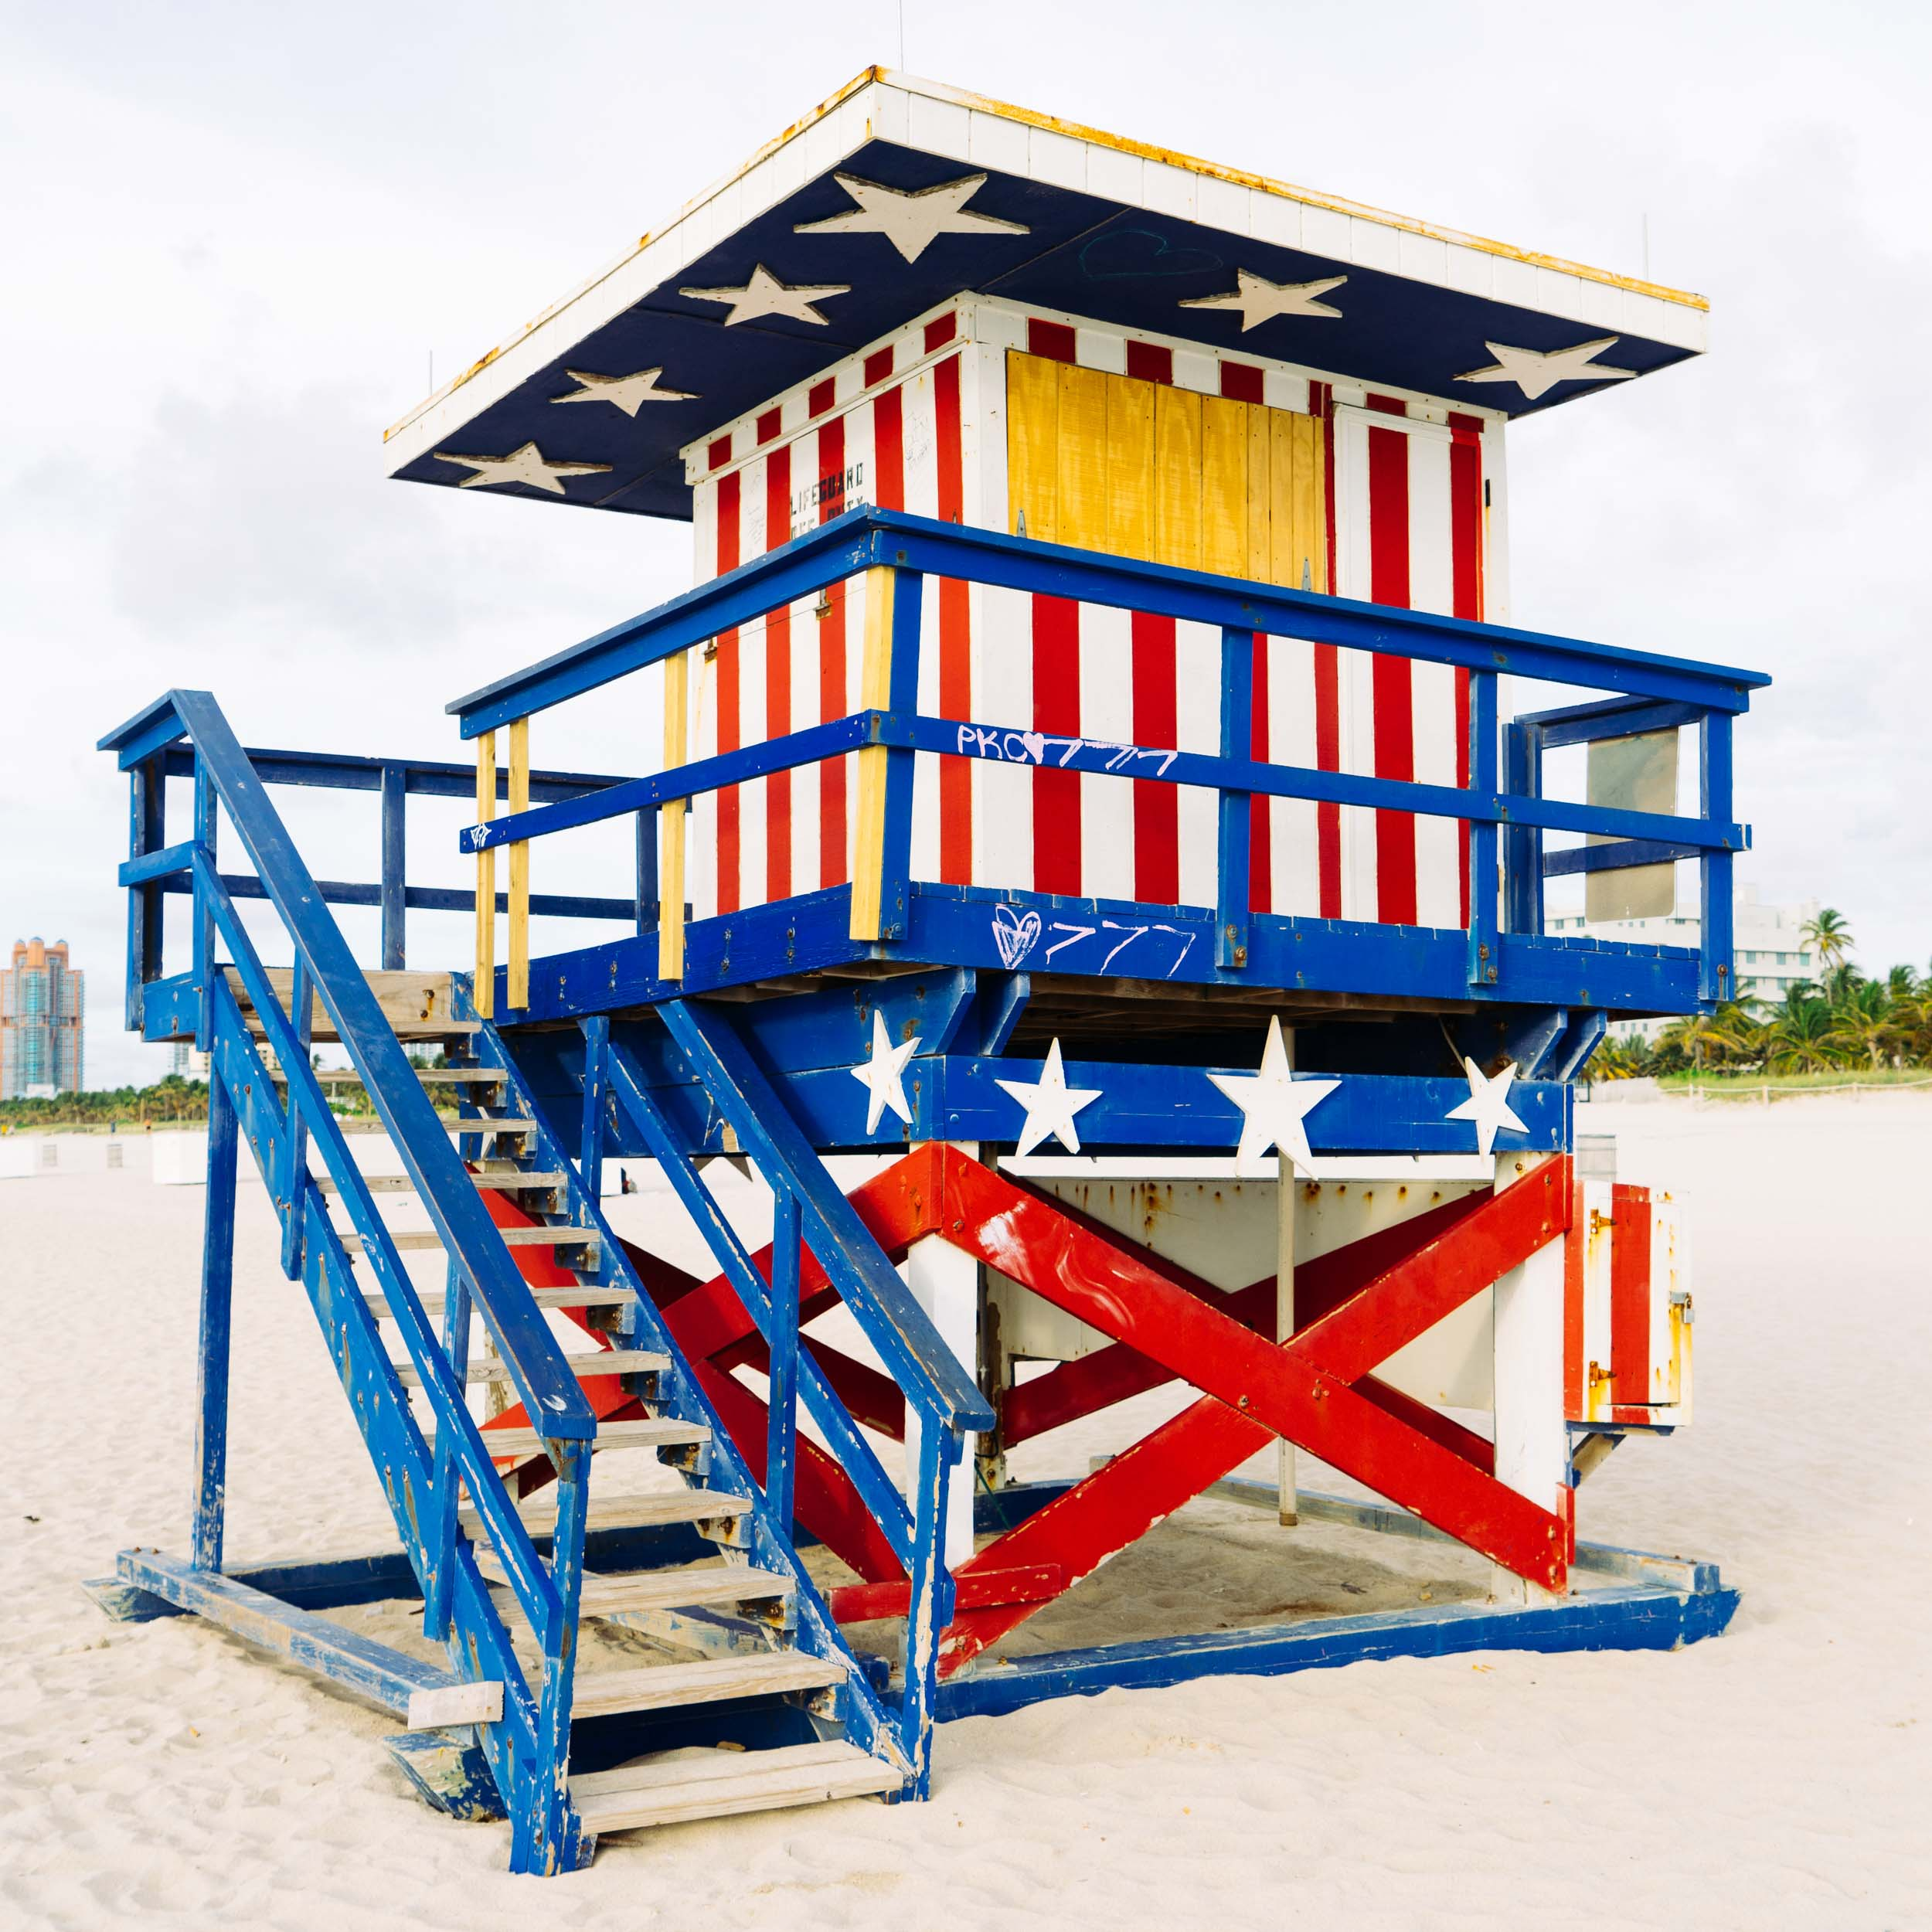 Stars and Stripes Miami Lifeguard Stand - Side View